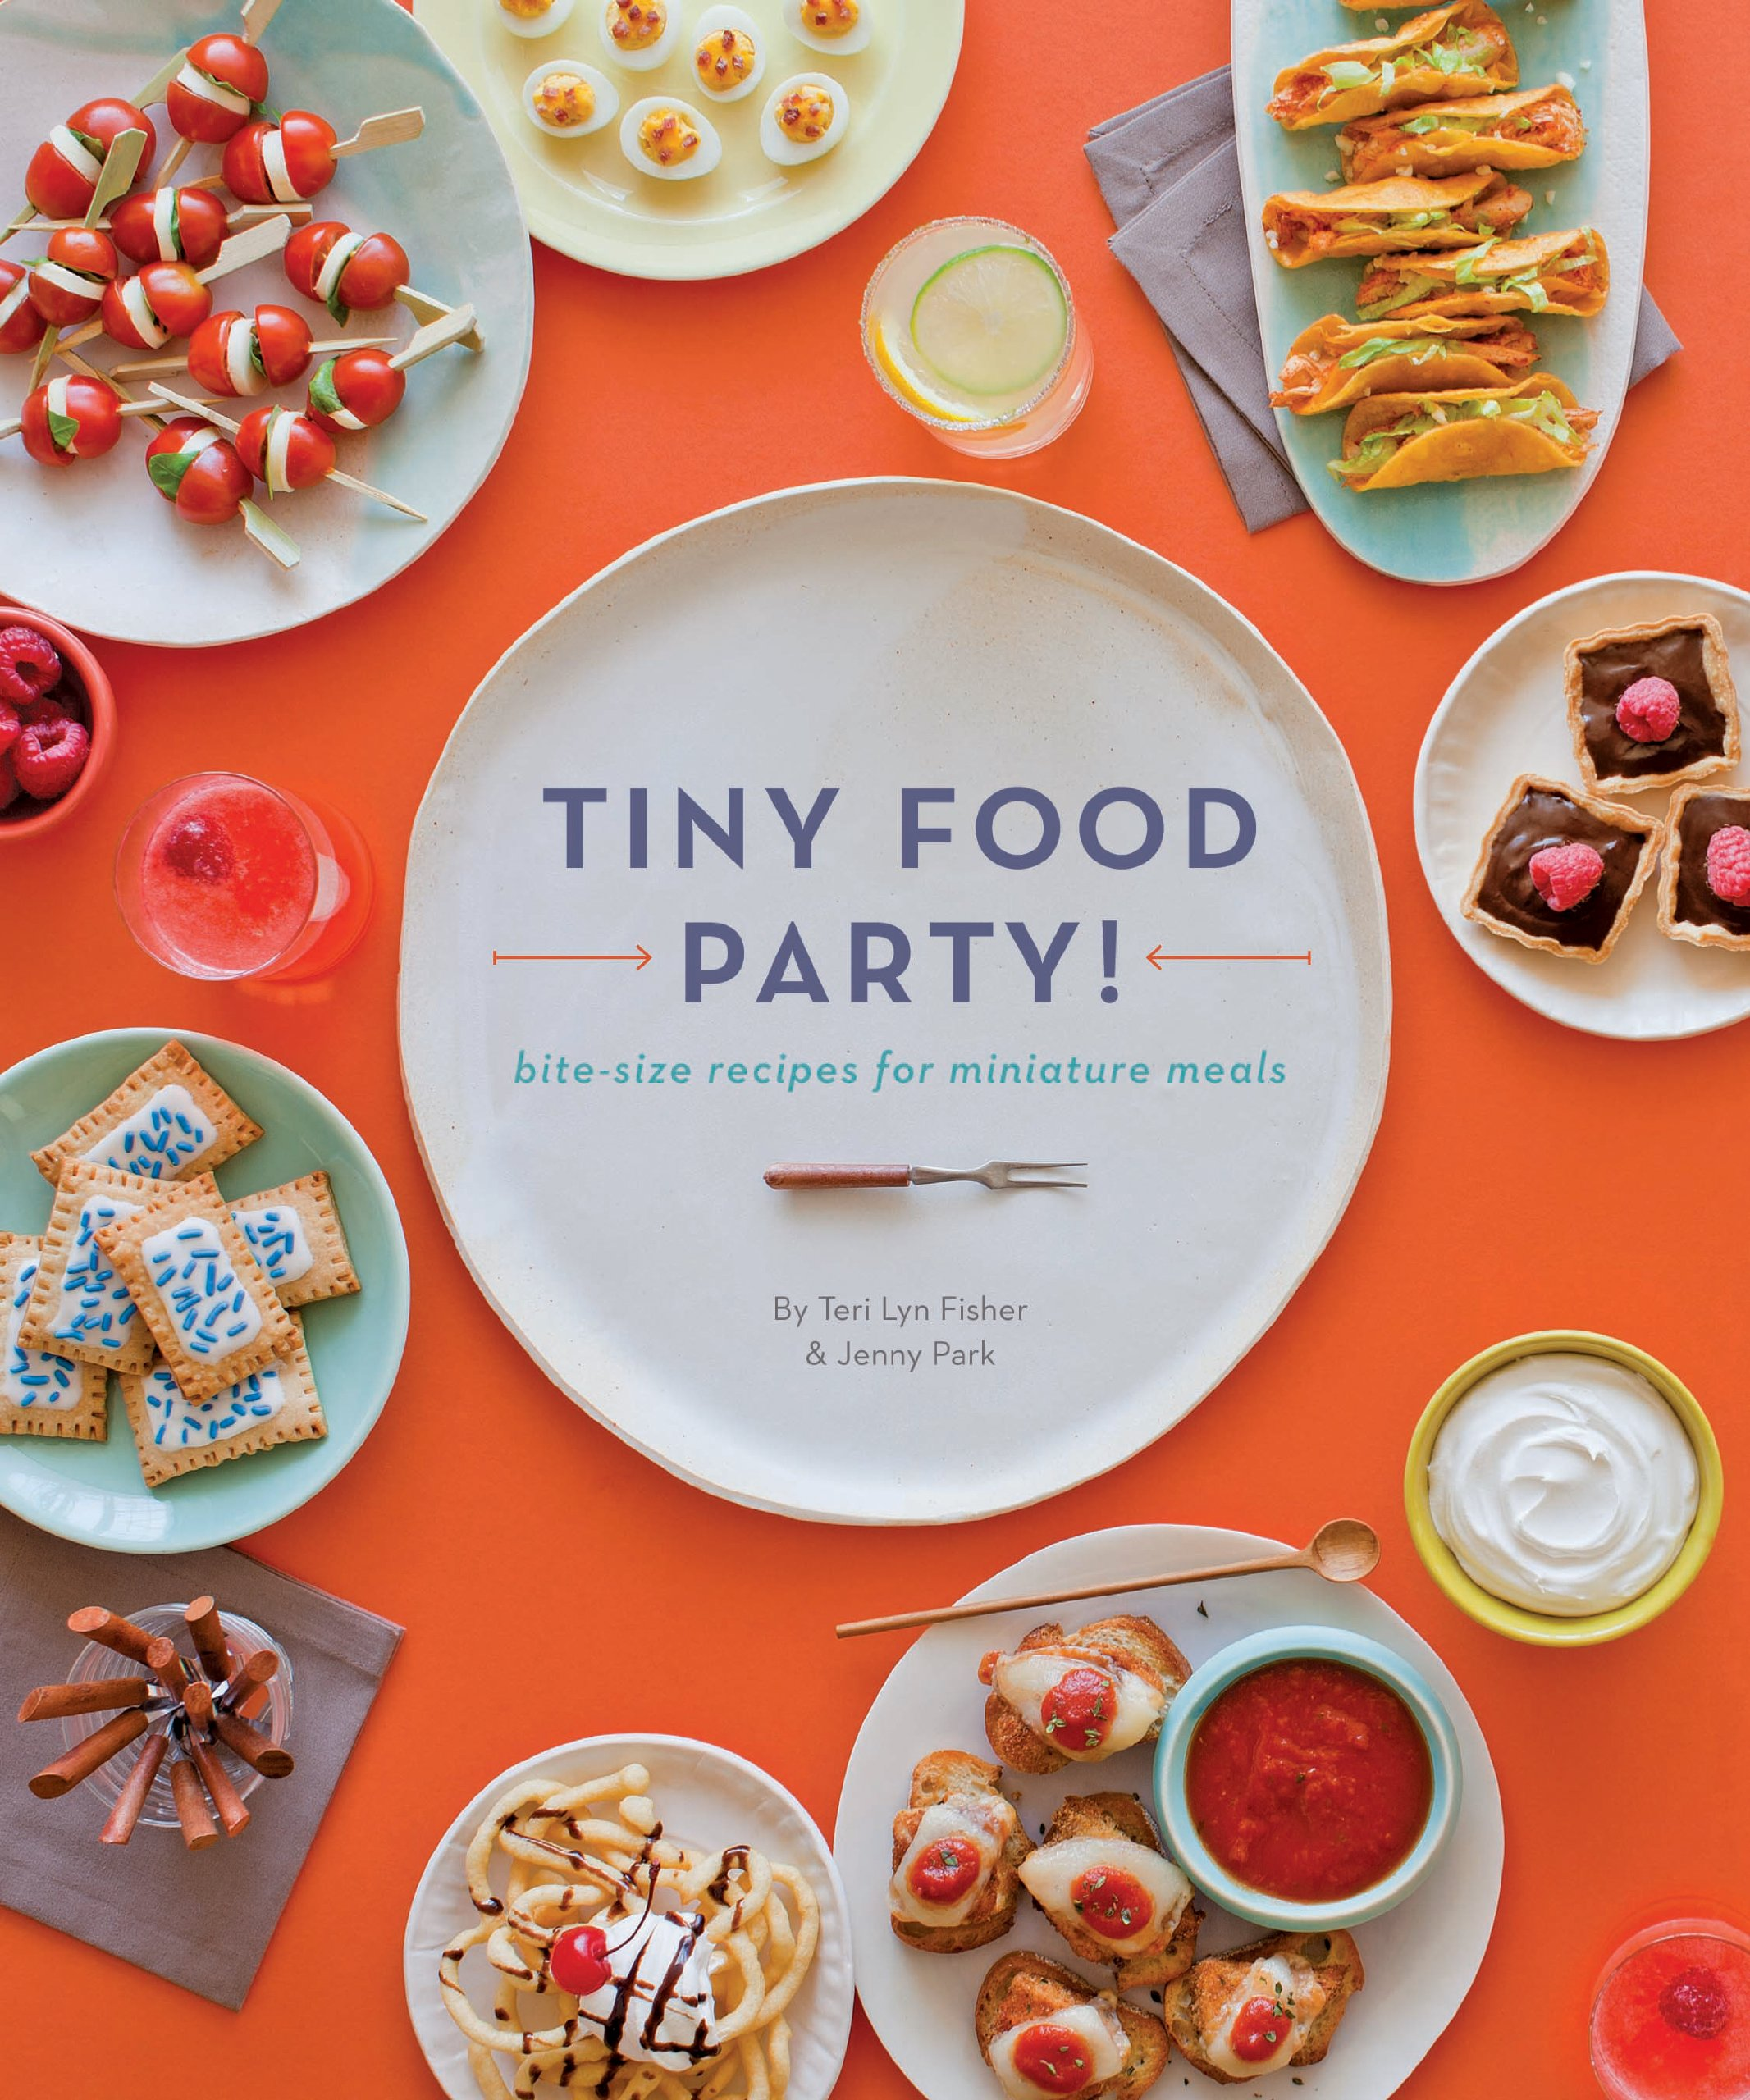 Pleasing Tiny Food Party Bite Size Recipes For Miniature Meals Teri Lyn Largest Home Design Picture Inspirations Pitcheantrous